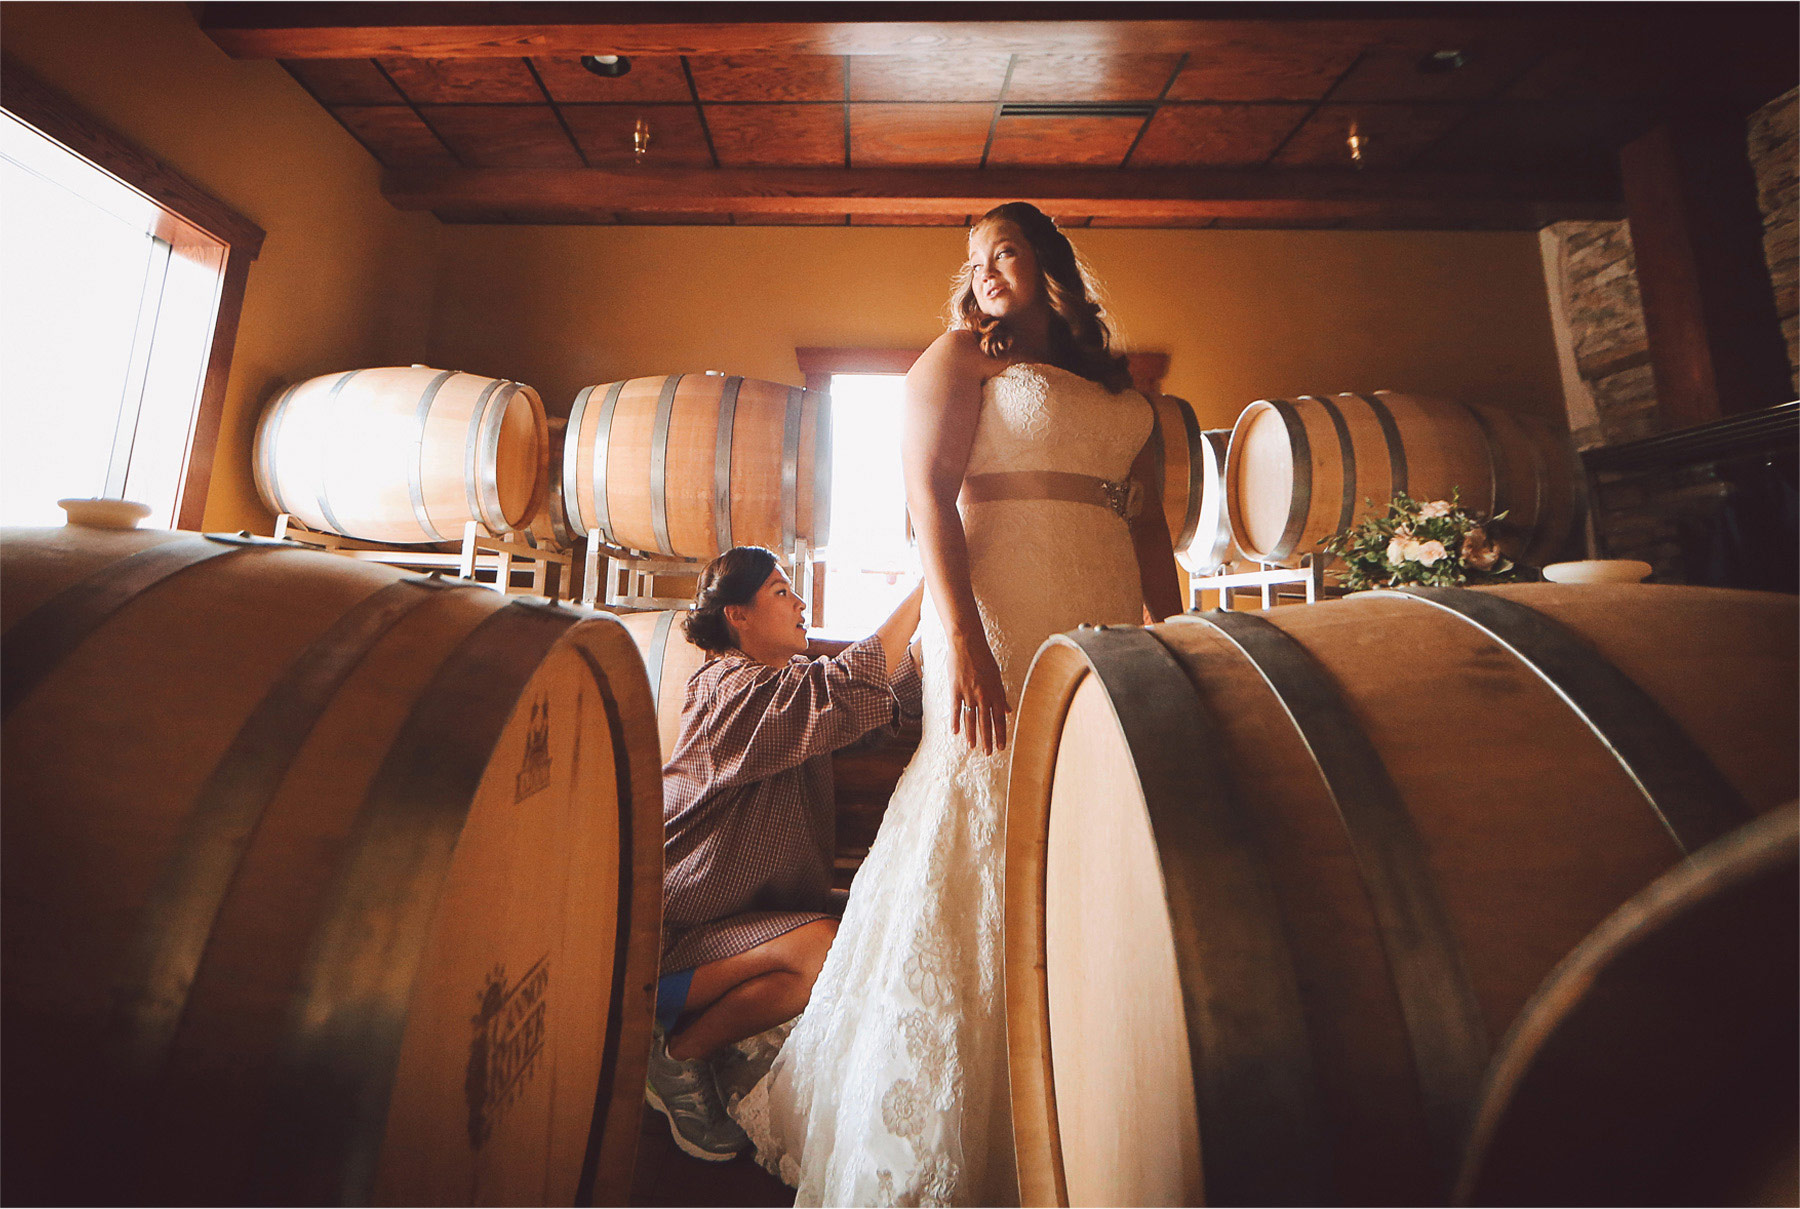 02-Cannon-Falls-Minnesota-Wedding-Photographer-by-Andrew-Vick-Photography-Summer-River-Winery-Getting-Ready-Bride-Bridesmaid-Dress-Wine-Barrels-Vintage-Becca-and-Donal.jpg